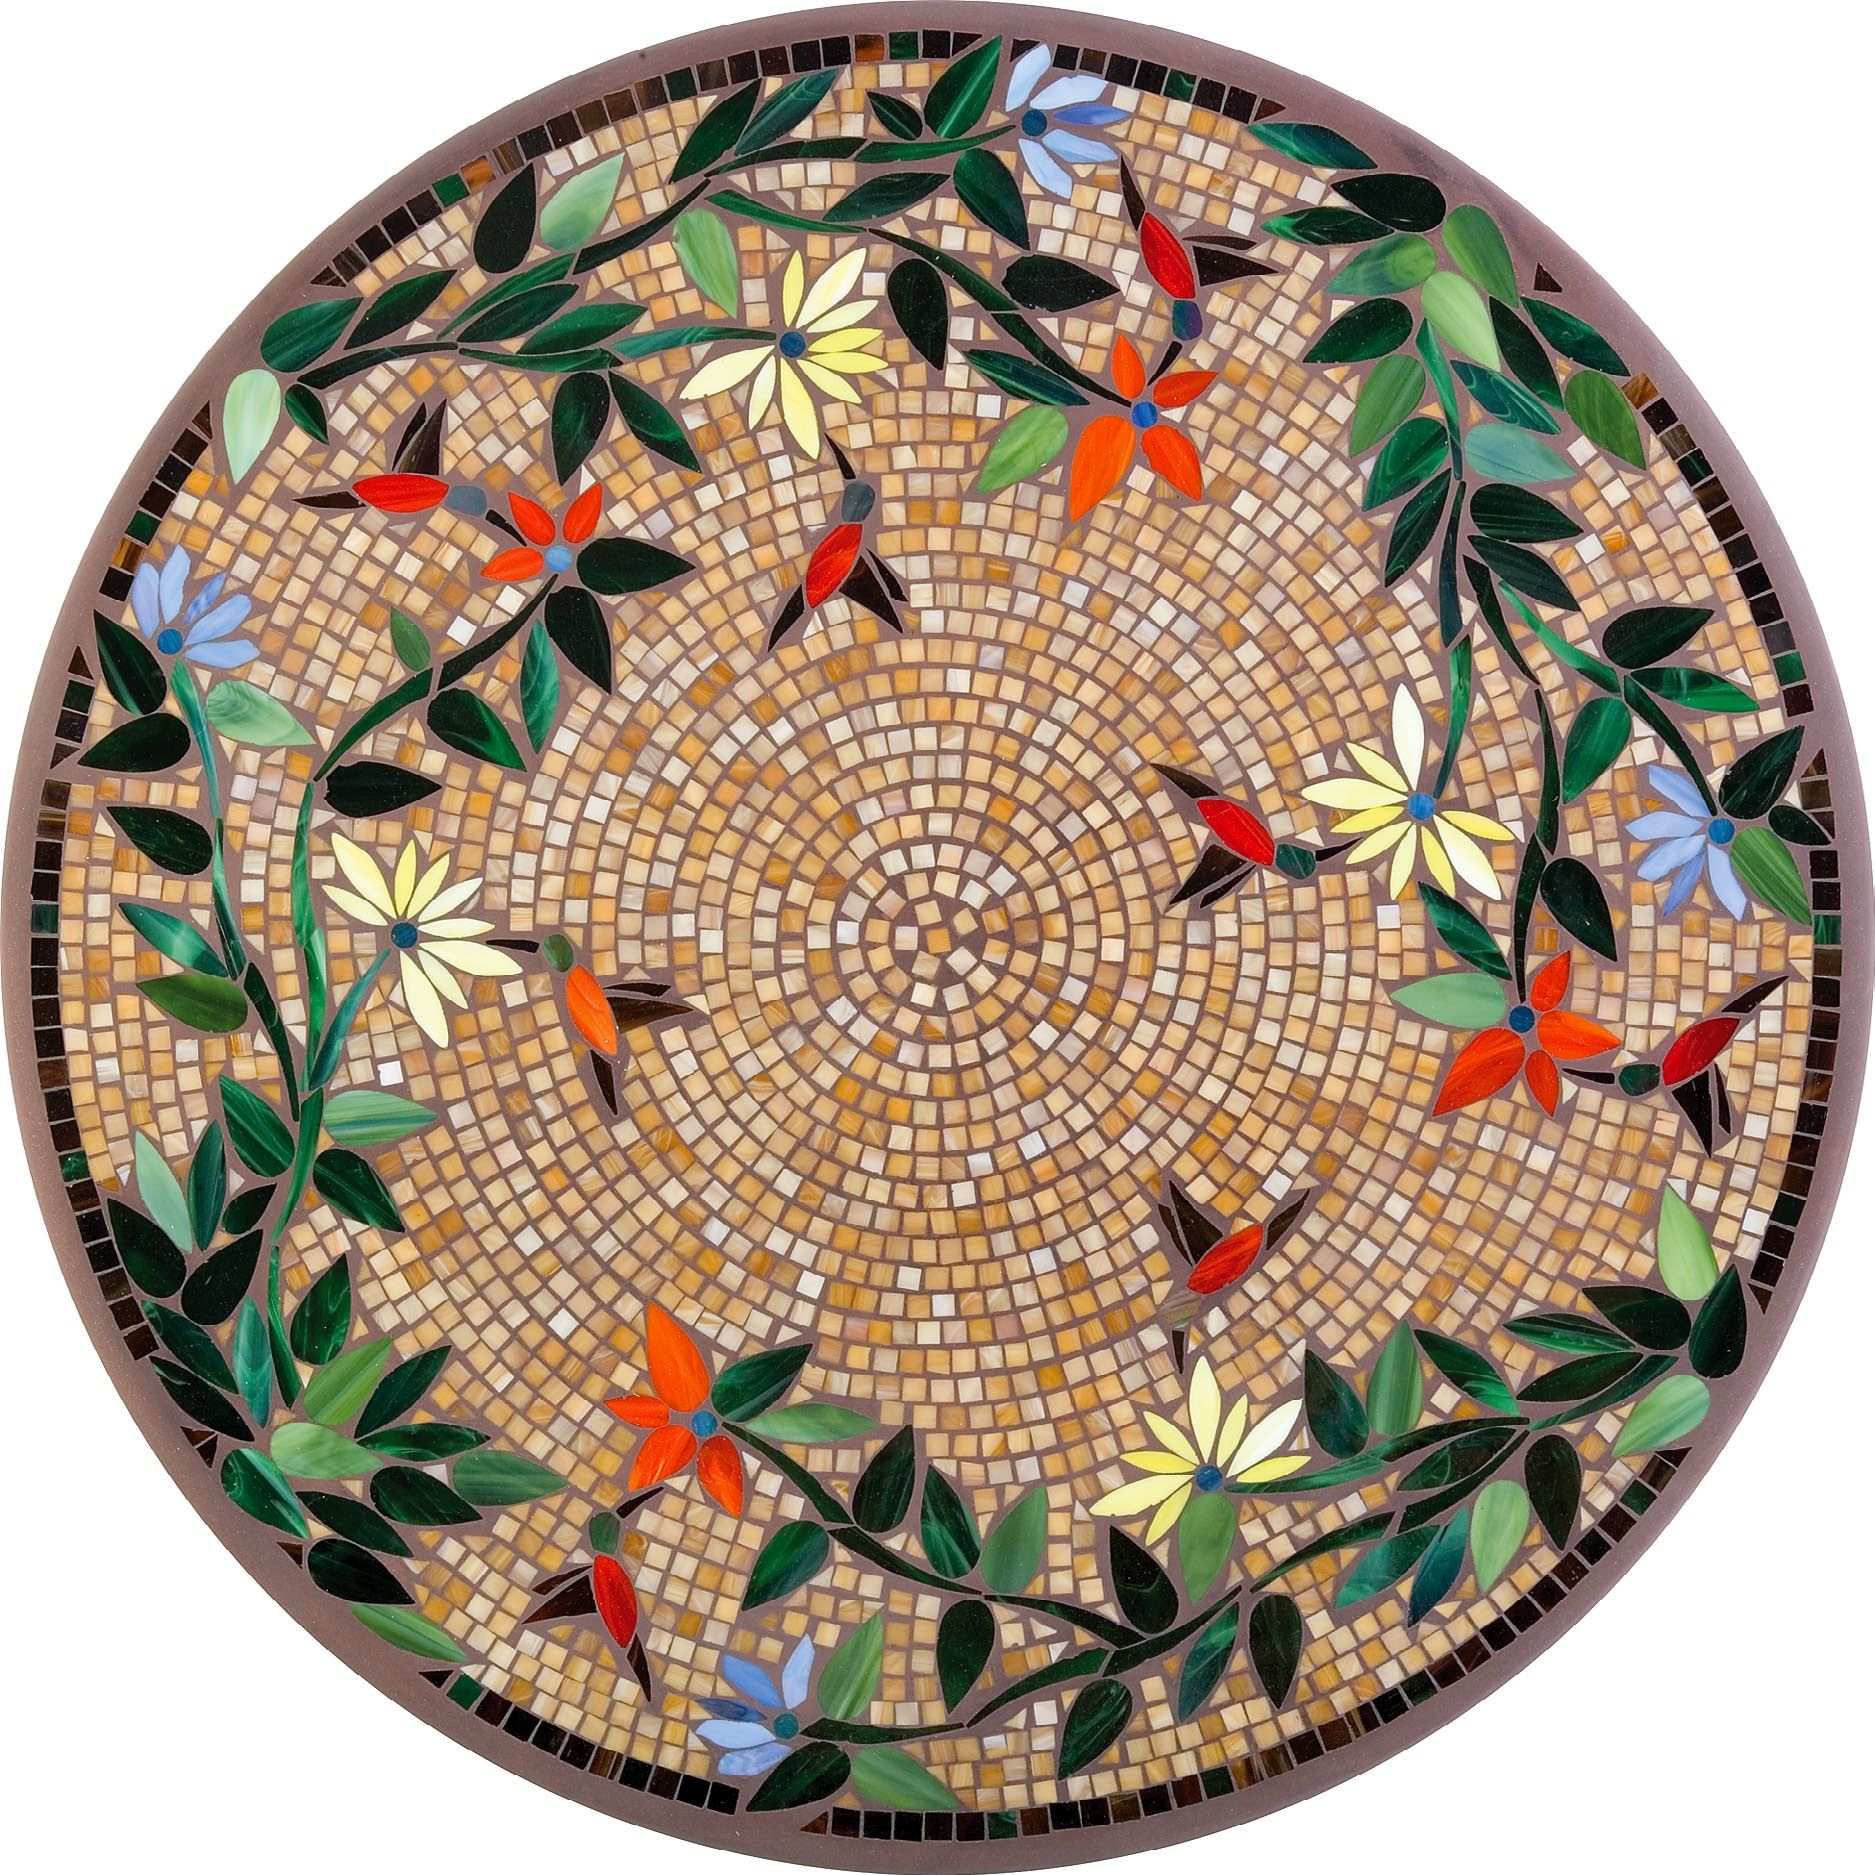 round mosaic table patterns | neille olson/knf: knf caramel